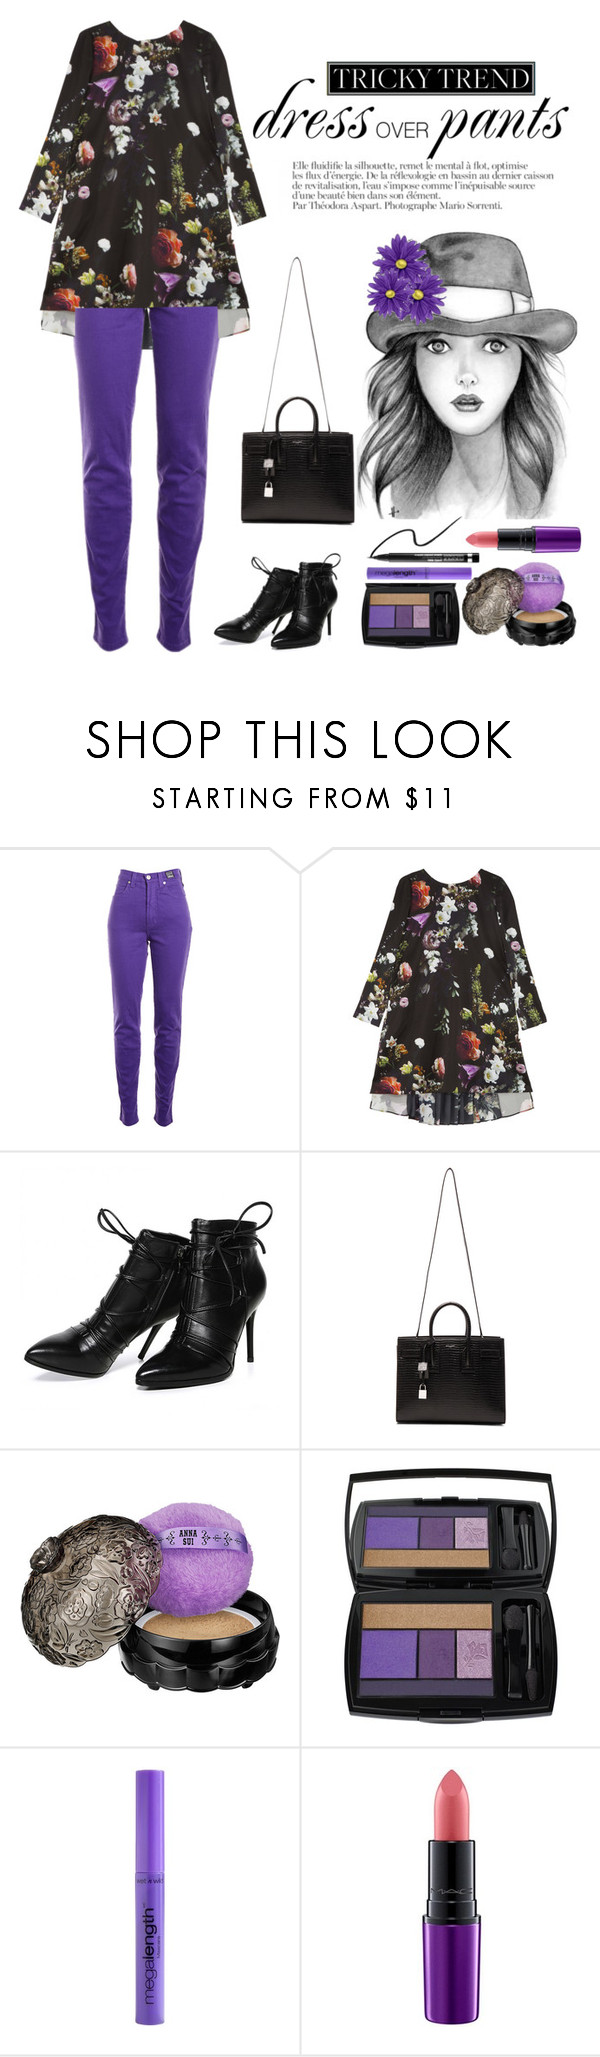 """""""Tricky Trend: Dress and Pants"""" by saifai ❤ liked on Polyvore featuring Anja, Versace Jeans Couture, ADAM, Morea, Yves Saint Laurent, Anna Sui, Lancôme, Wet n Wild, MAC Cosmetics and Clinique"""